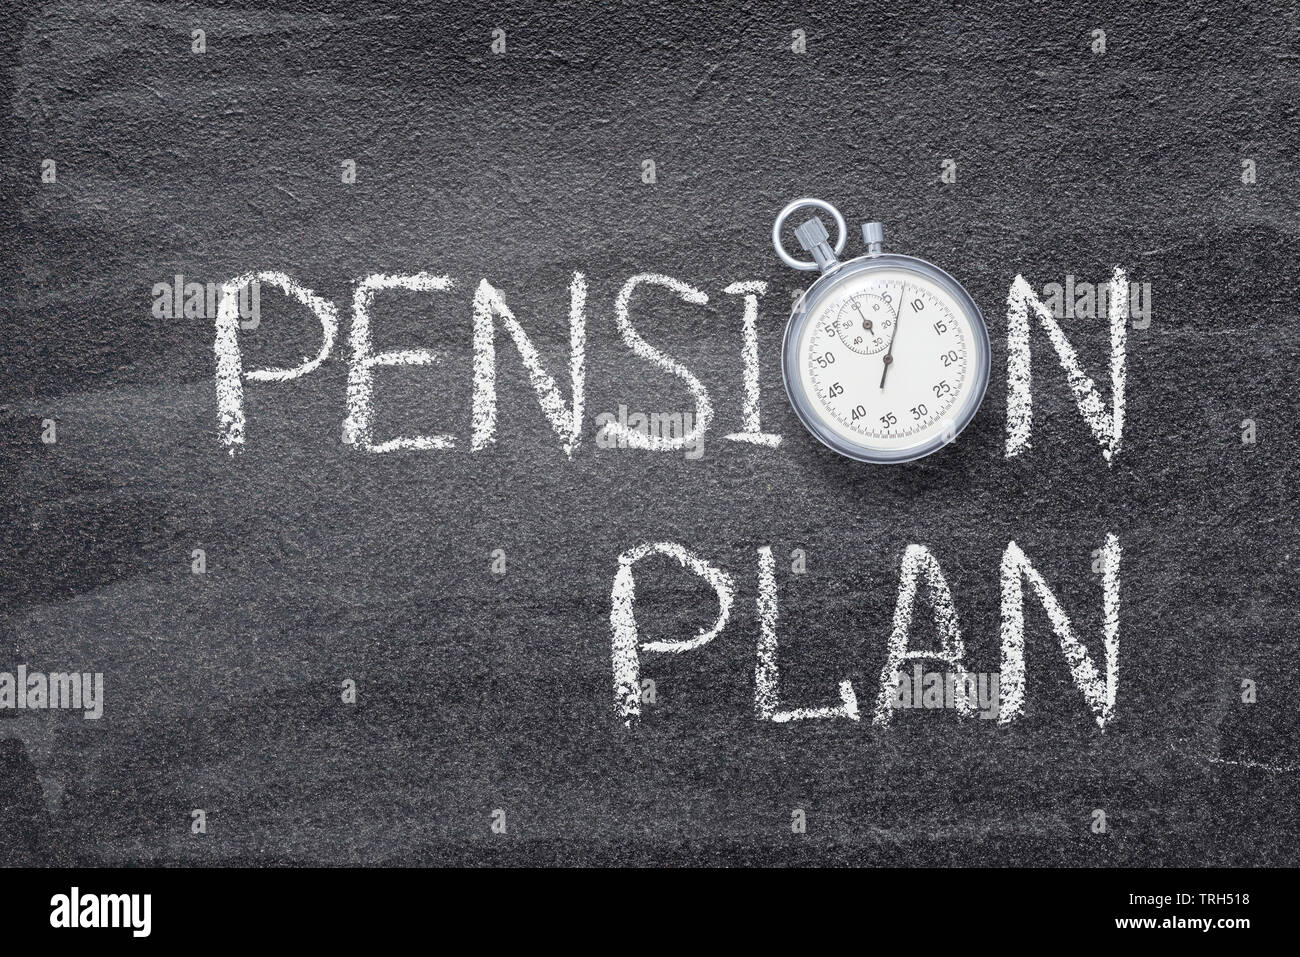 pension plan phrase written on chalkboard with vintage stopwatch used instead of O - Stock Image